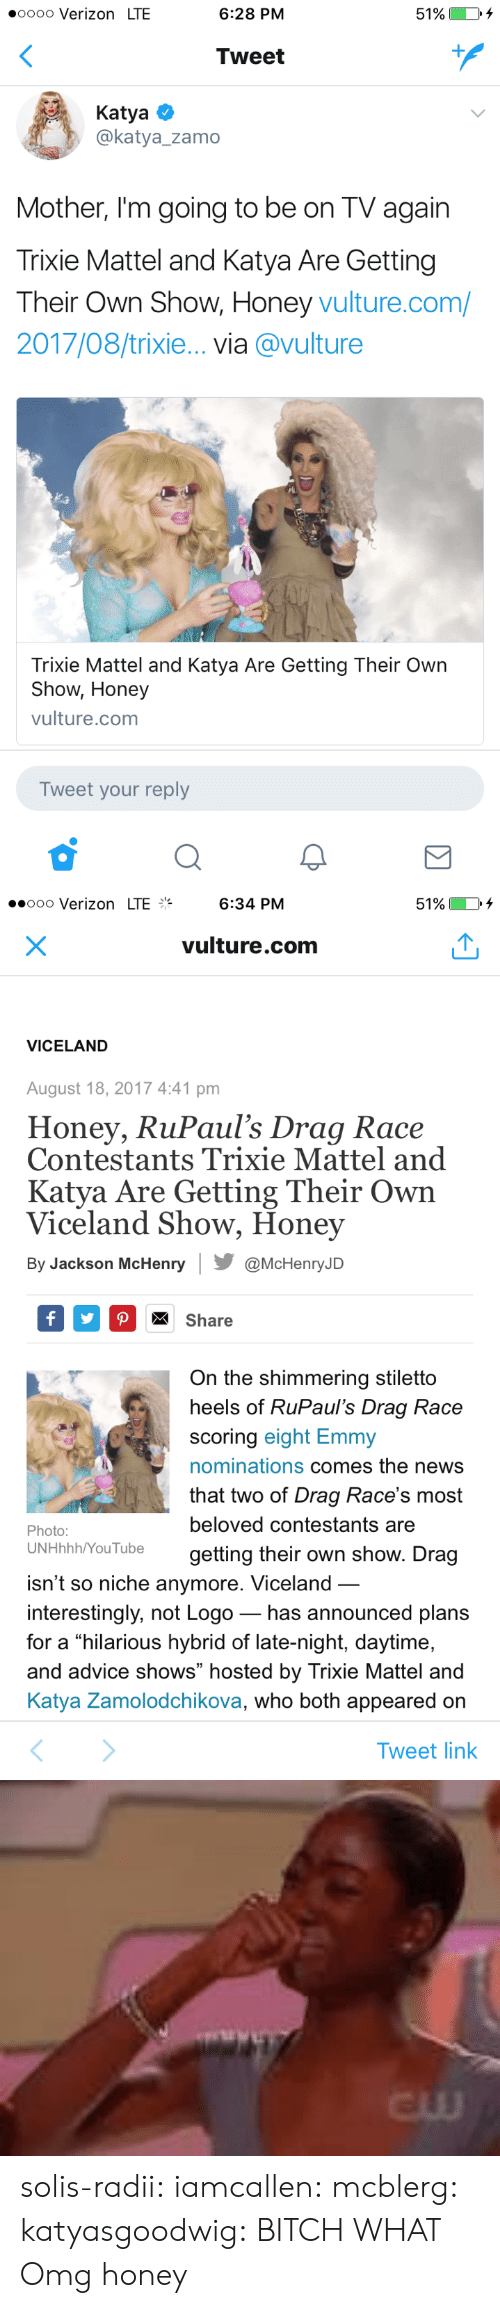 "Advice, Bilbo, and Bitch: oooo Verizon LTE  6:28 PM  51%)  Tweet  Katya  @katya_zamo  Mother, I'm going to be on TV again  Trixie Mattel and Katya Are Gettingg  Their Own Show, Honey vulture.com/  2017/08/trixie... via @vulture  Trixie Mattel and Katya Are Getting Their Own  Show, Honey  vulture.com  Tweet your reply   ..ooo Verizon LTE%  6:34 PM  51%  vulture.com  VICELAND  August 18, 2017 4:41 pm  Honey, RuPaul's Drag Race  Contestants Trixie Mattel and  Katya Are Getting Their Own  Viceland Show, Honey  By Jackson McHenry@McHenryJD  Share  On the shimmering stiletto  heels of RuPaul's Draq Race  scoring eight Emmy  nominations comes the news  that two of Drag Race's most  beloved contestants are  getting their own show. Drag  Photo:  UNHhhh/YouTube  isn't so niche anymore. Viceland  interestingly, not Logo_ has announced plans  for a hilarious hybrid of late-night, daytime,  and advice shows"" hosted by Trixie Mattel and  Katya Zamolodchikova, who both appeared on  Tweet link   cw solis-radii:  iamcallen:   mcblerg:  katyasgoodwig: BITCH WHAT  Omg  honey"